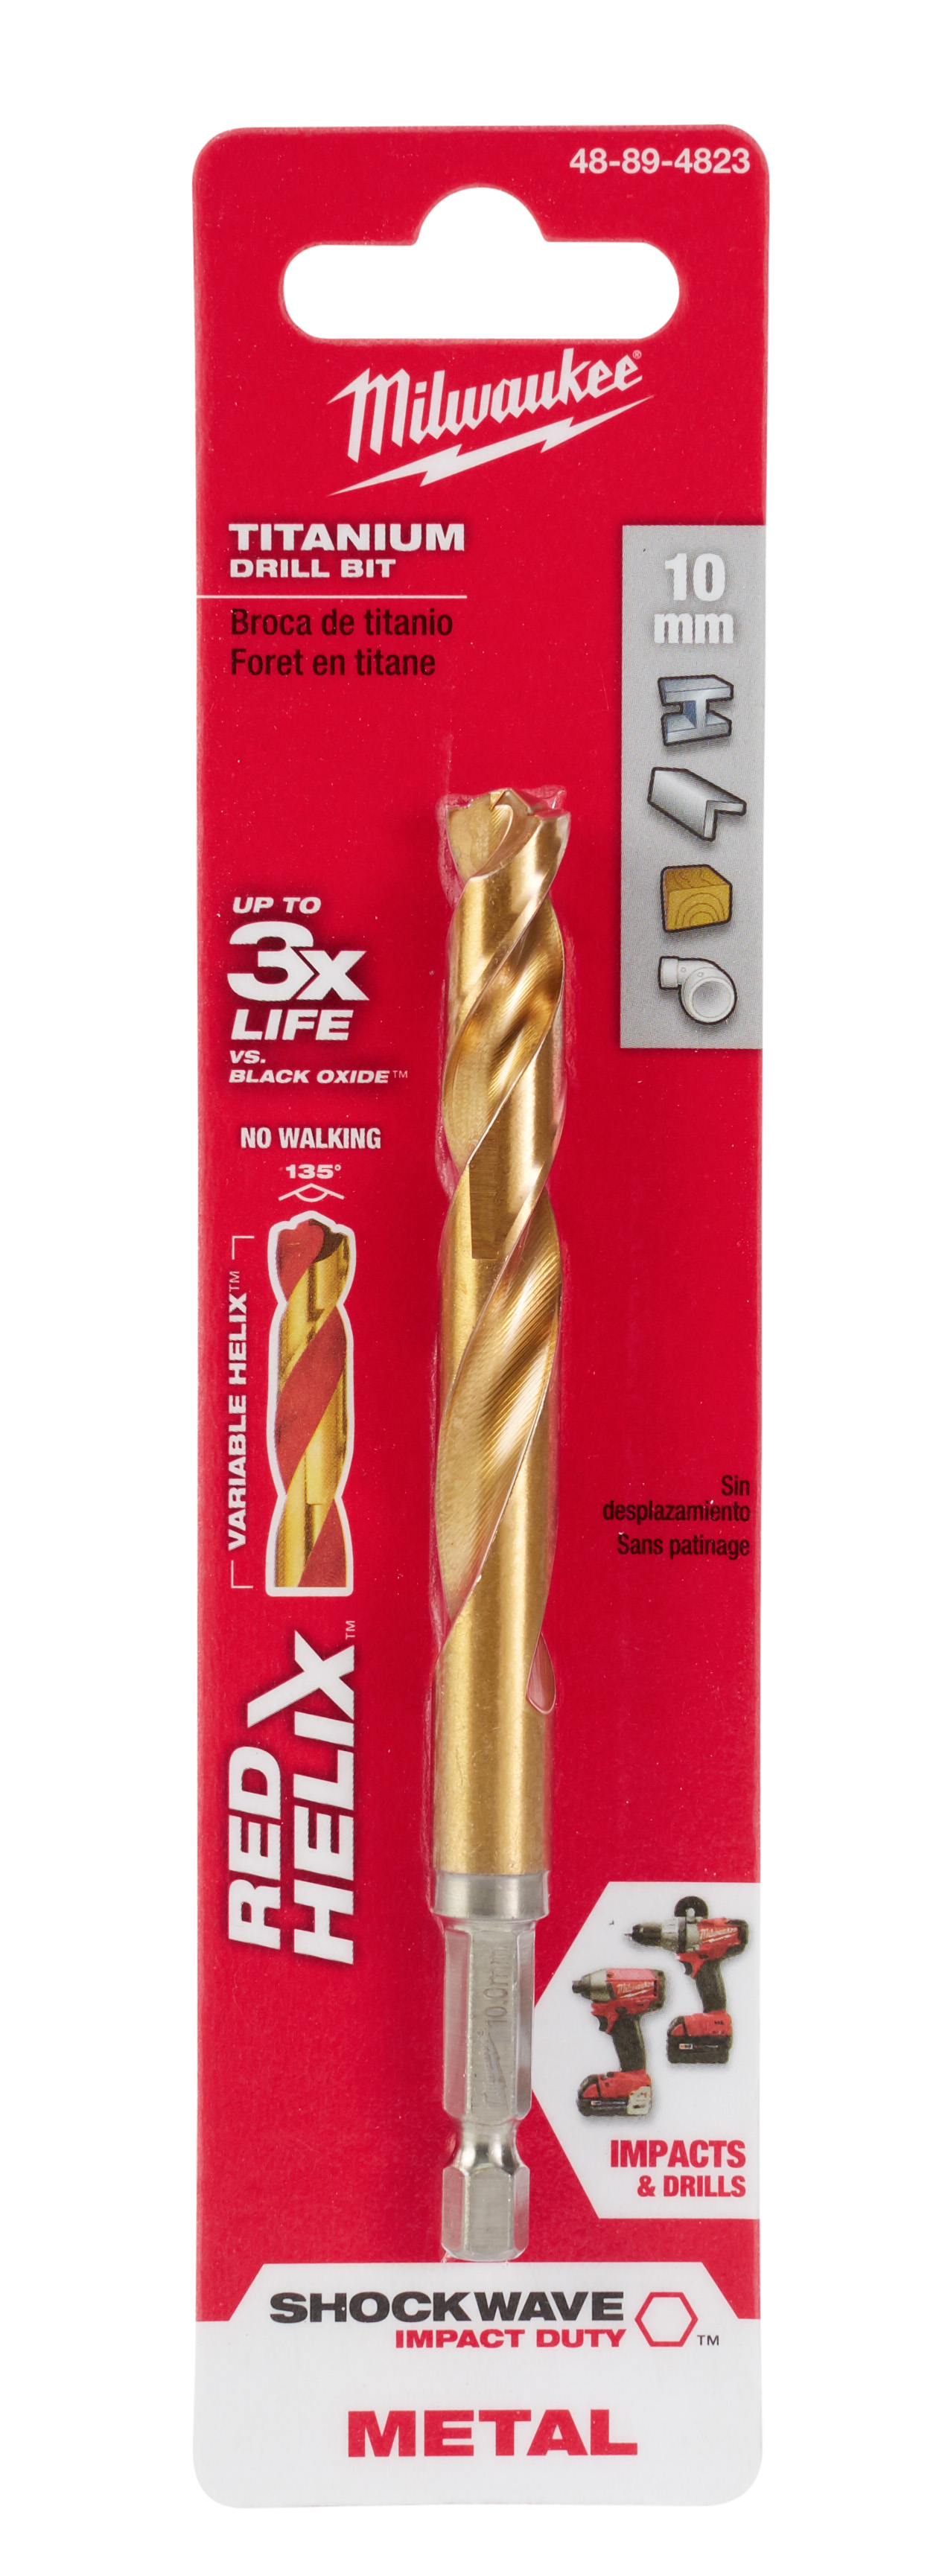 Milwaukee® SHOCKWAVE™ RED HELIX® Impact Duty® 48-89-4823 Hex Shank Drill Bit, 10 mm Drill - Metric, 0.3937 in Drill - Decimal Inch, (2 Flutes